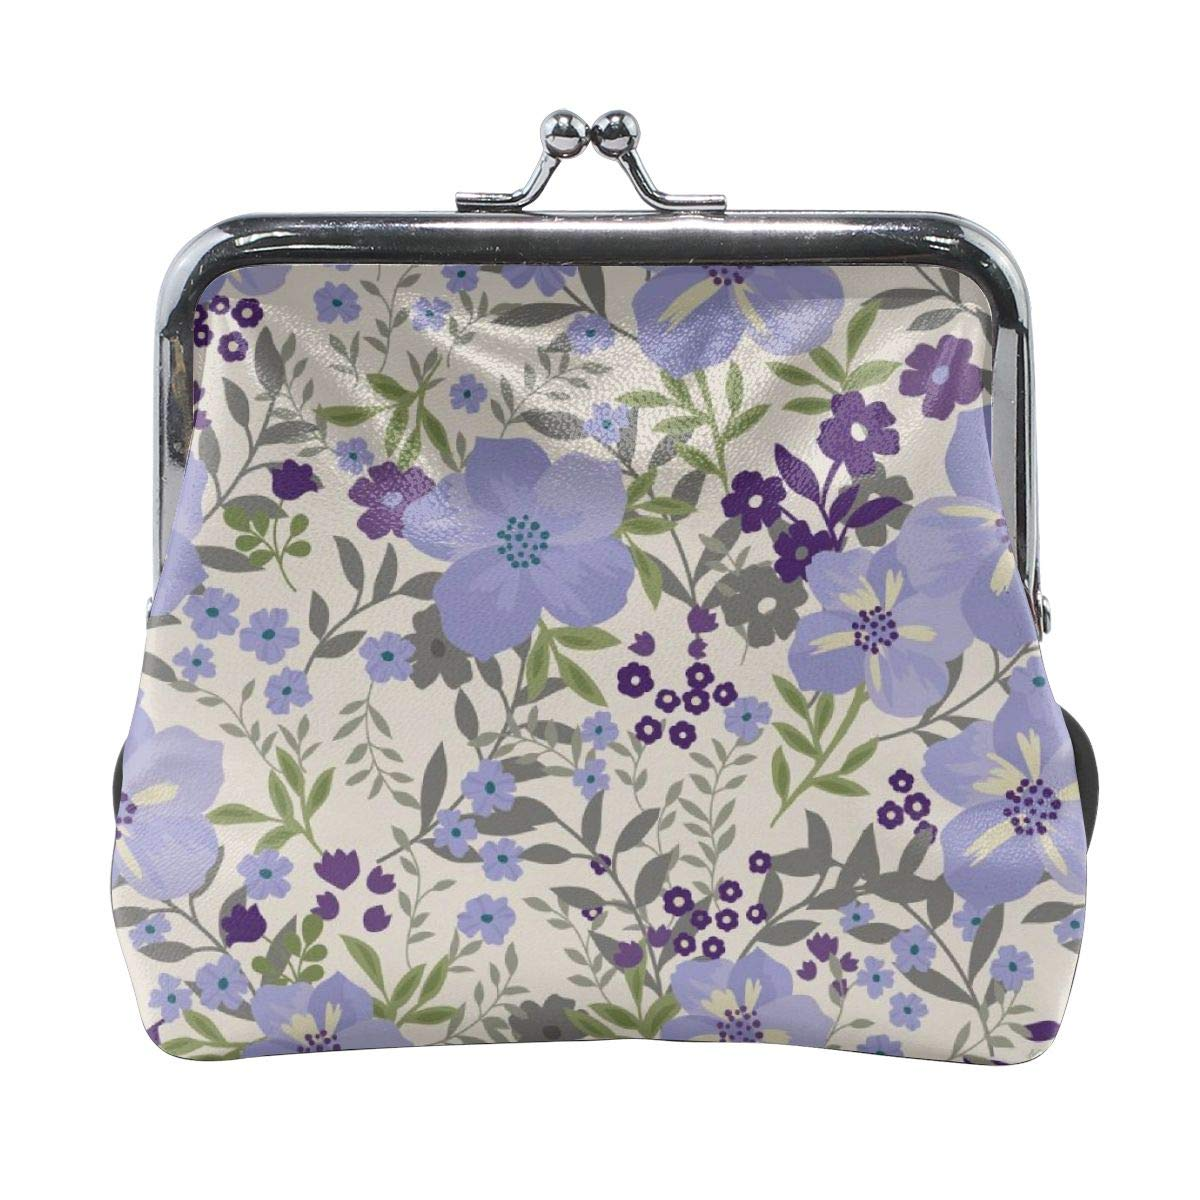 Womens Lavender Floral Buckle Coin Purses Soft Leather Wallet